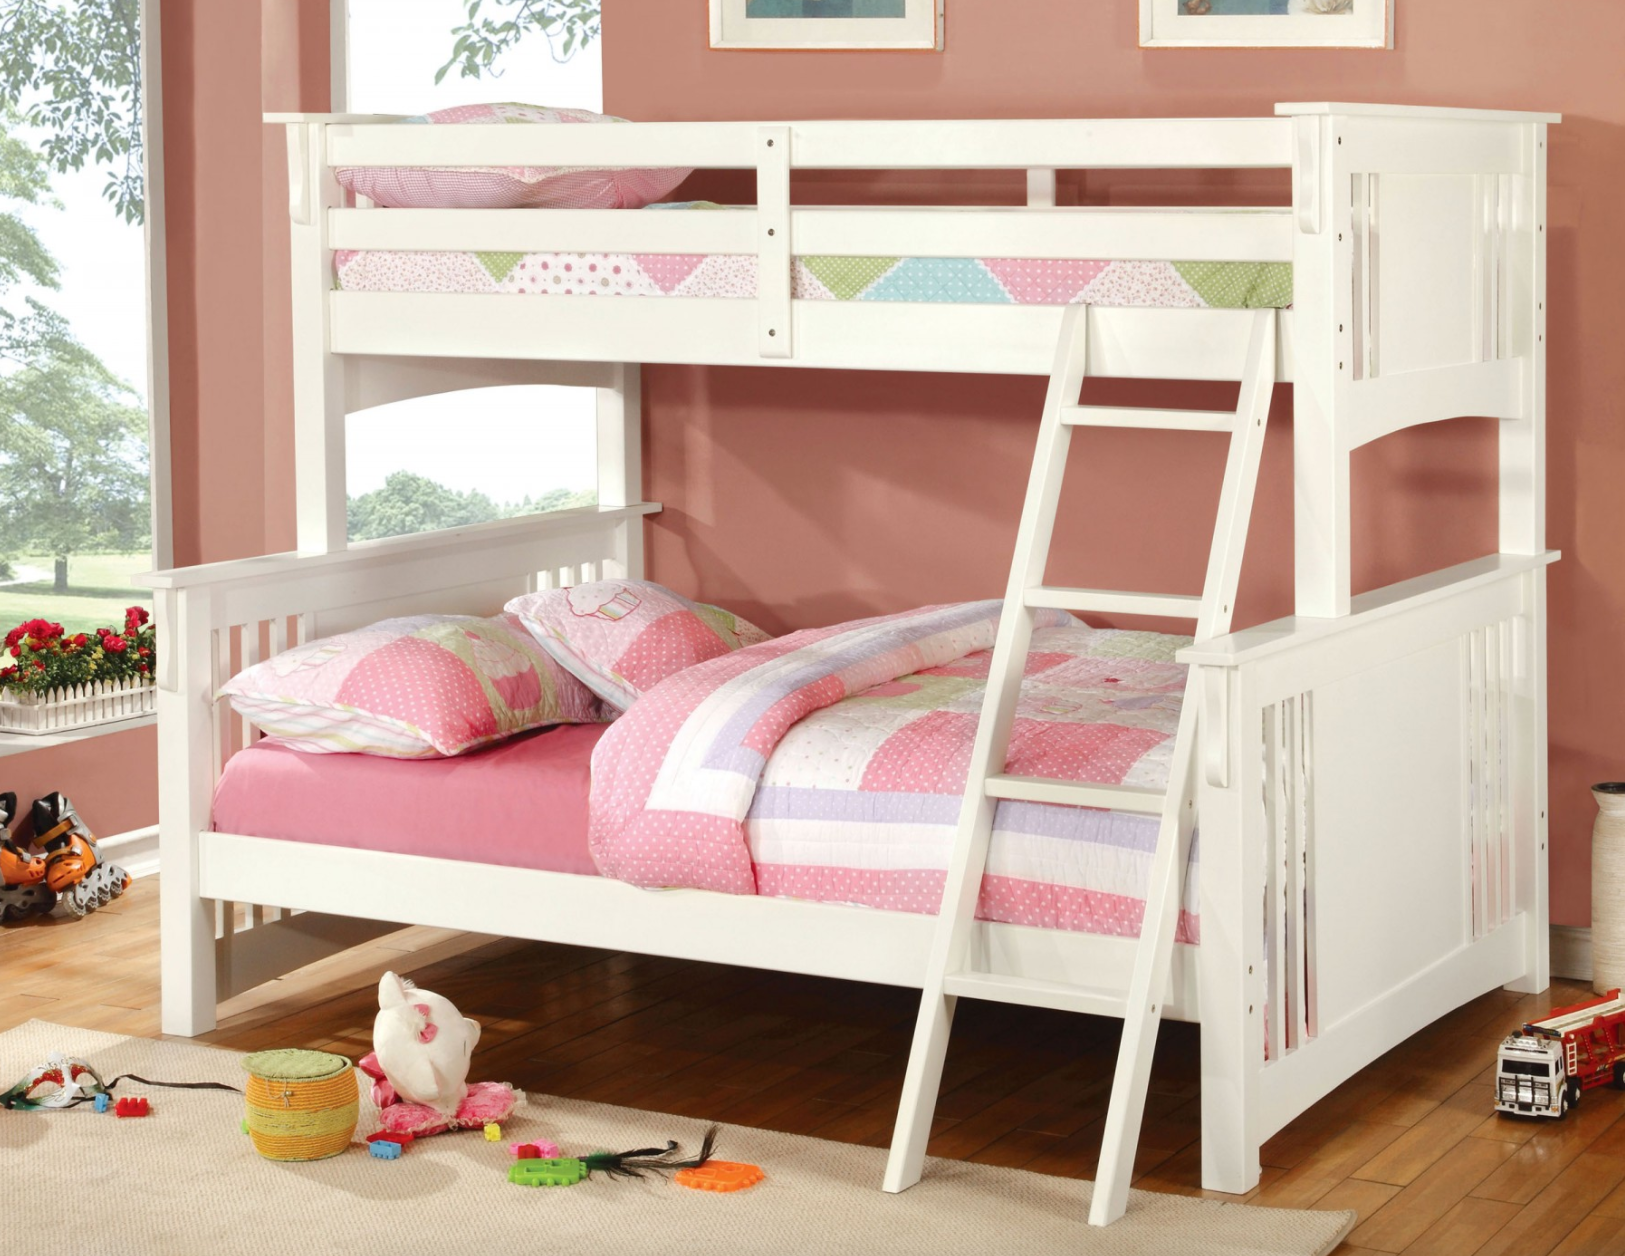 Crestline Twin Xl Over Queen Bunk Bed In White Kids Furniture In